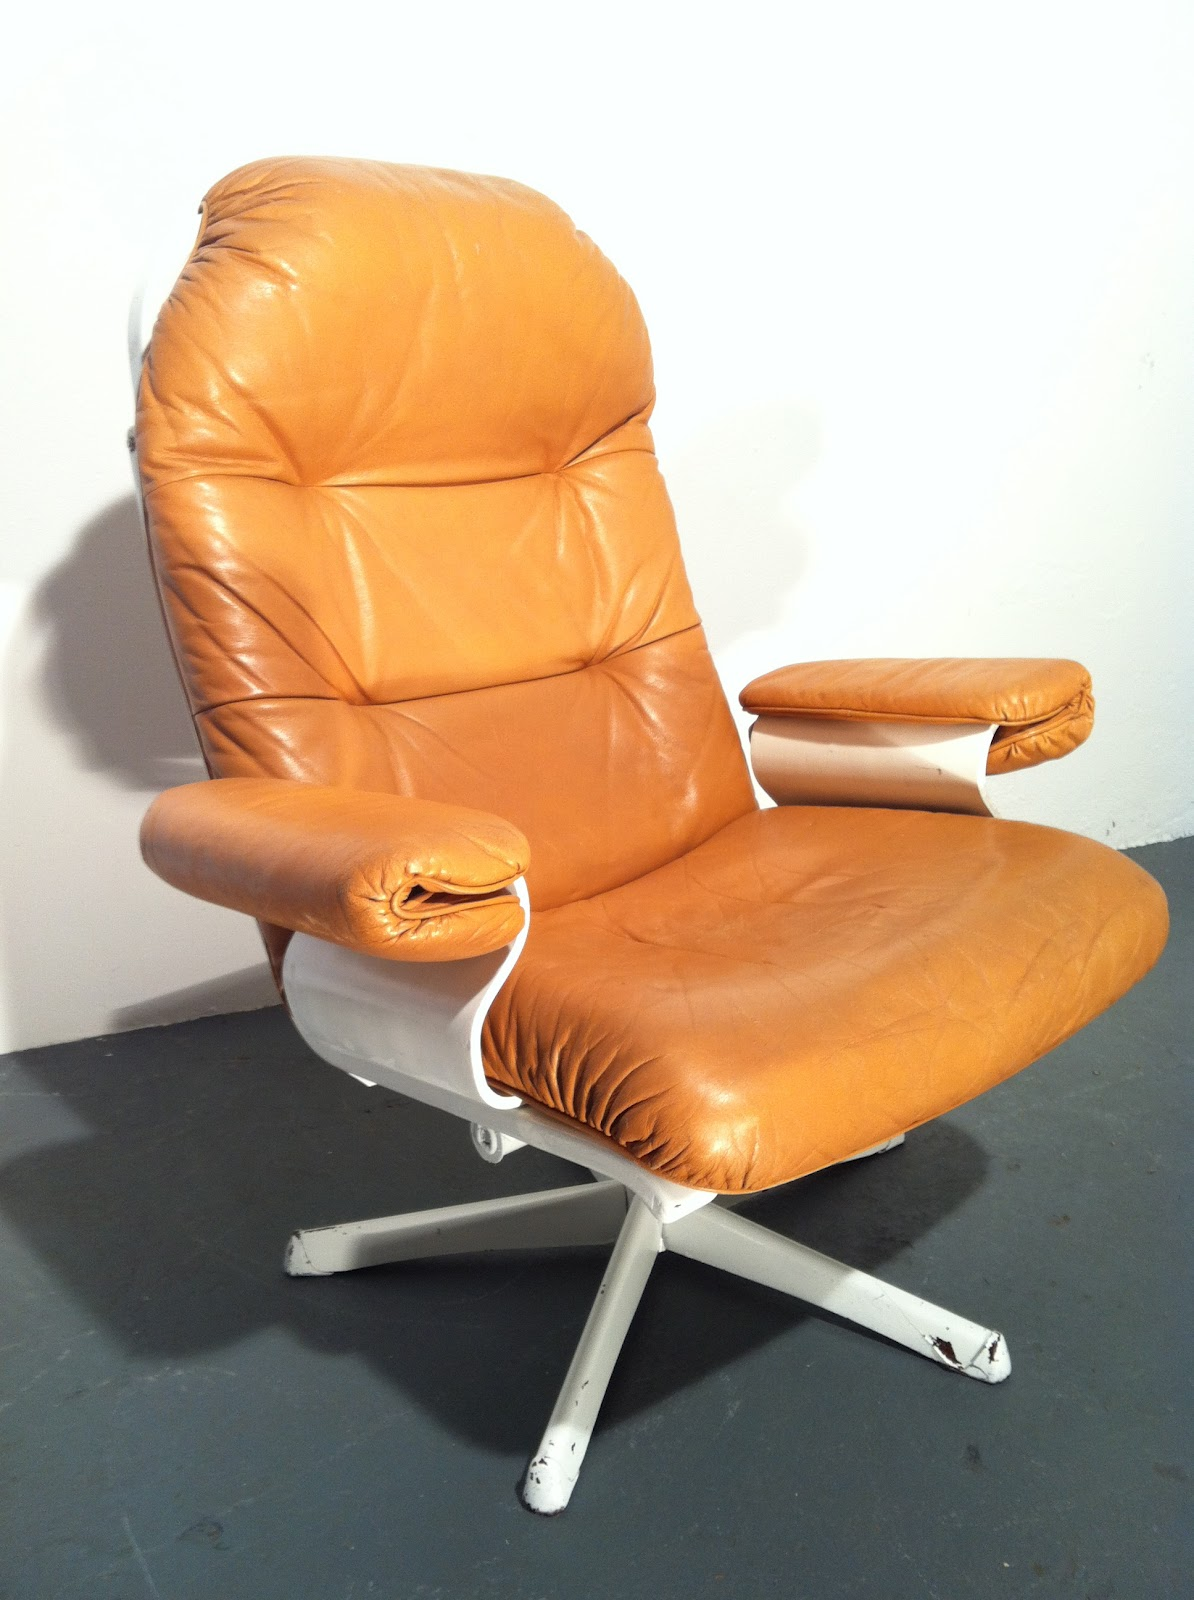 Swivel Chair Ireland Office High Vintage Furniture Ocd New Stock In For A